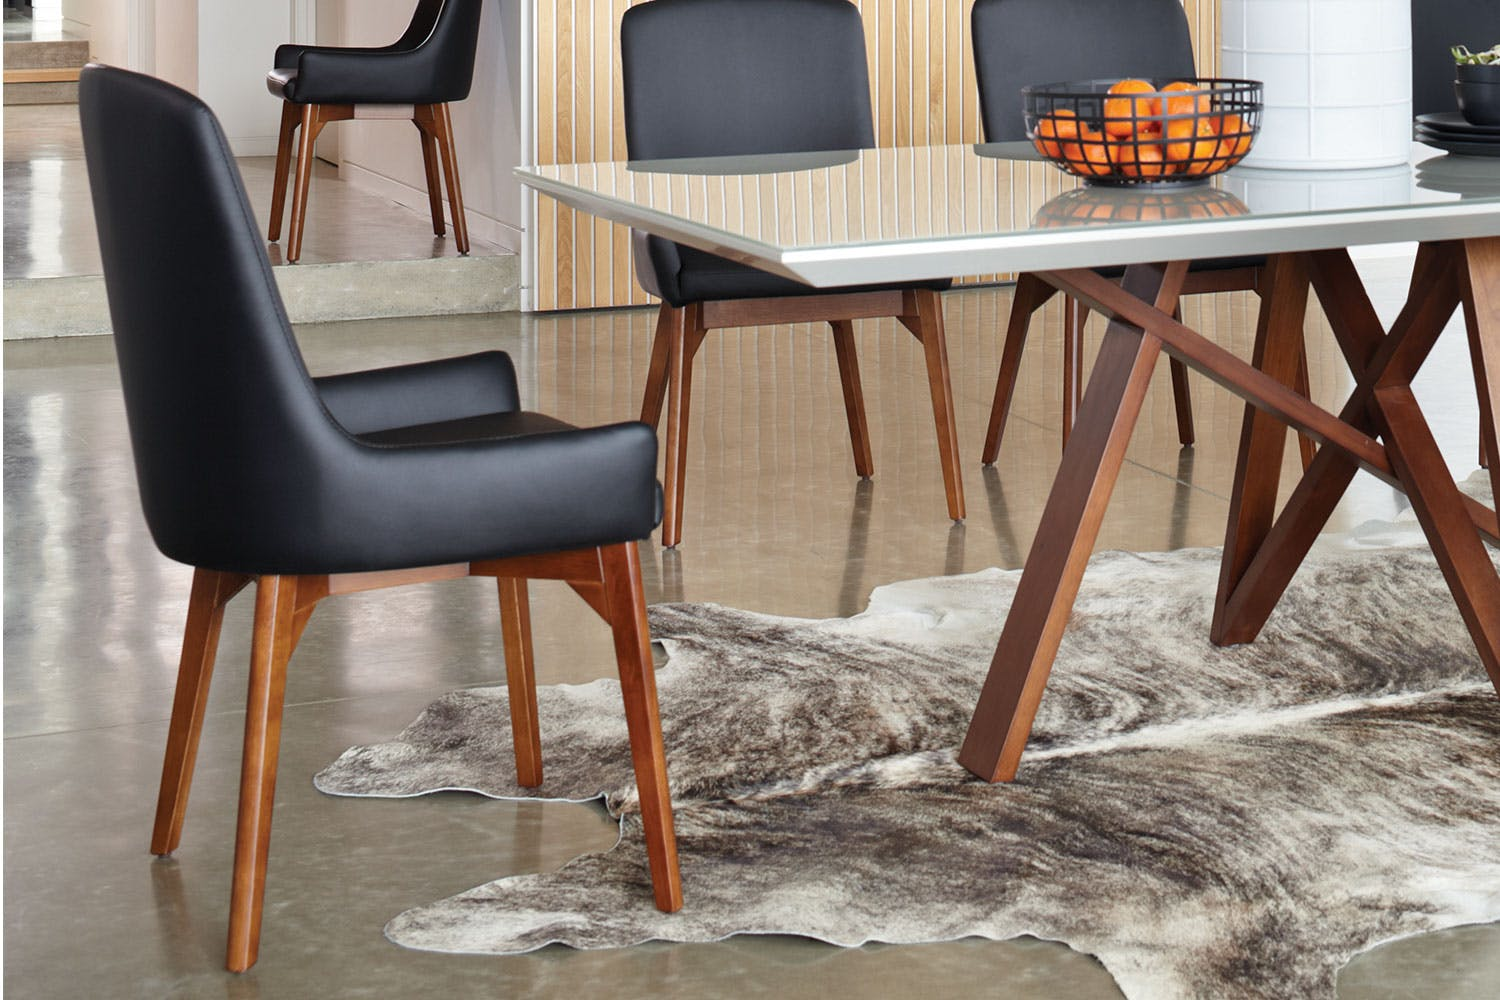 Monte Carlo Dining Chair By Insato Furniture Harvey Norman New Zealand